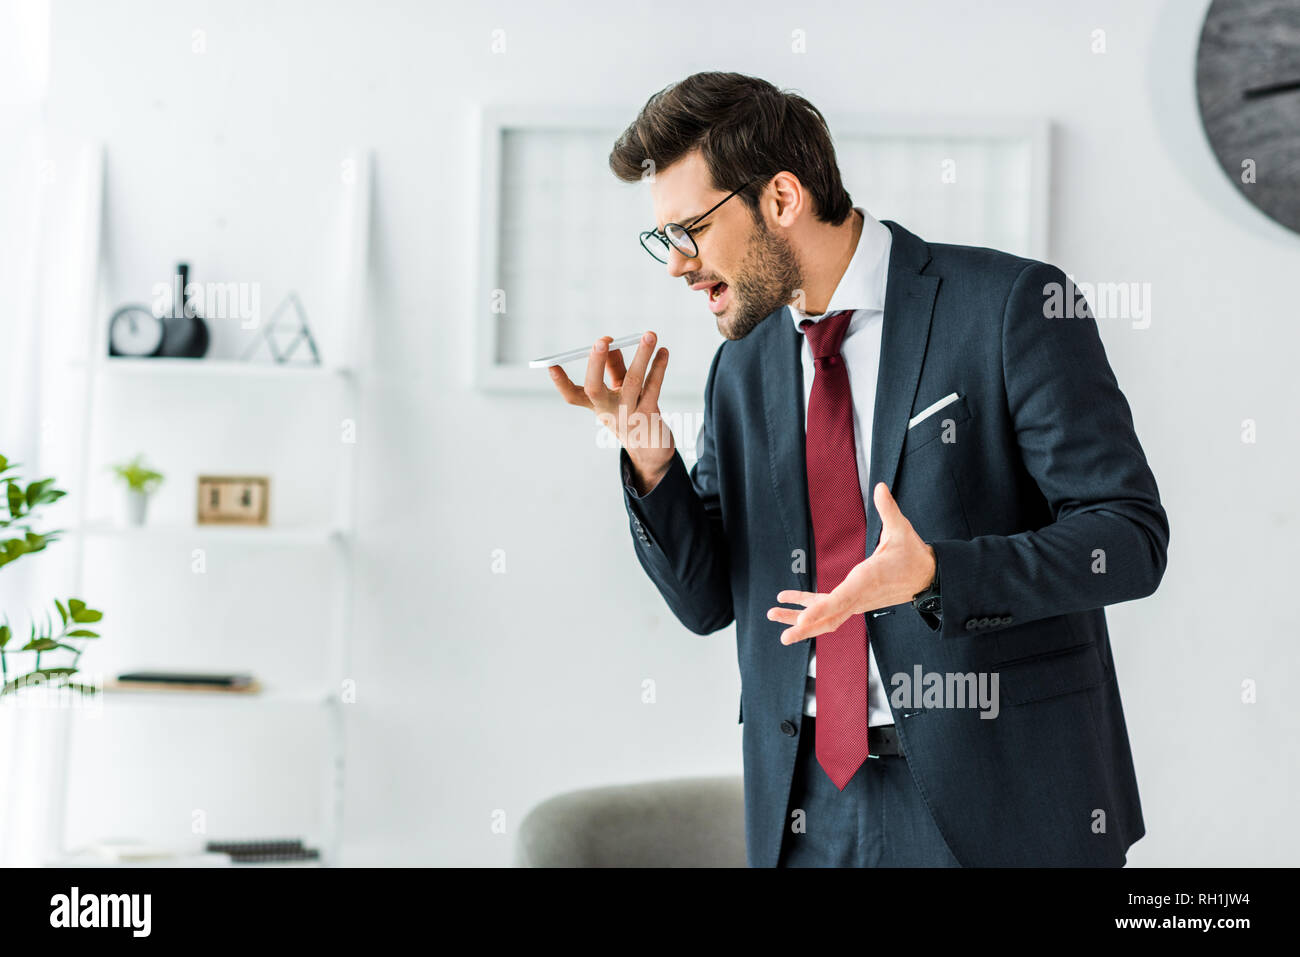 angry businessman in formal wear yelling at smartphone during conversation in office - Stock Image